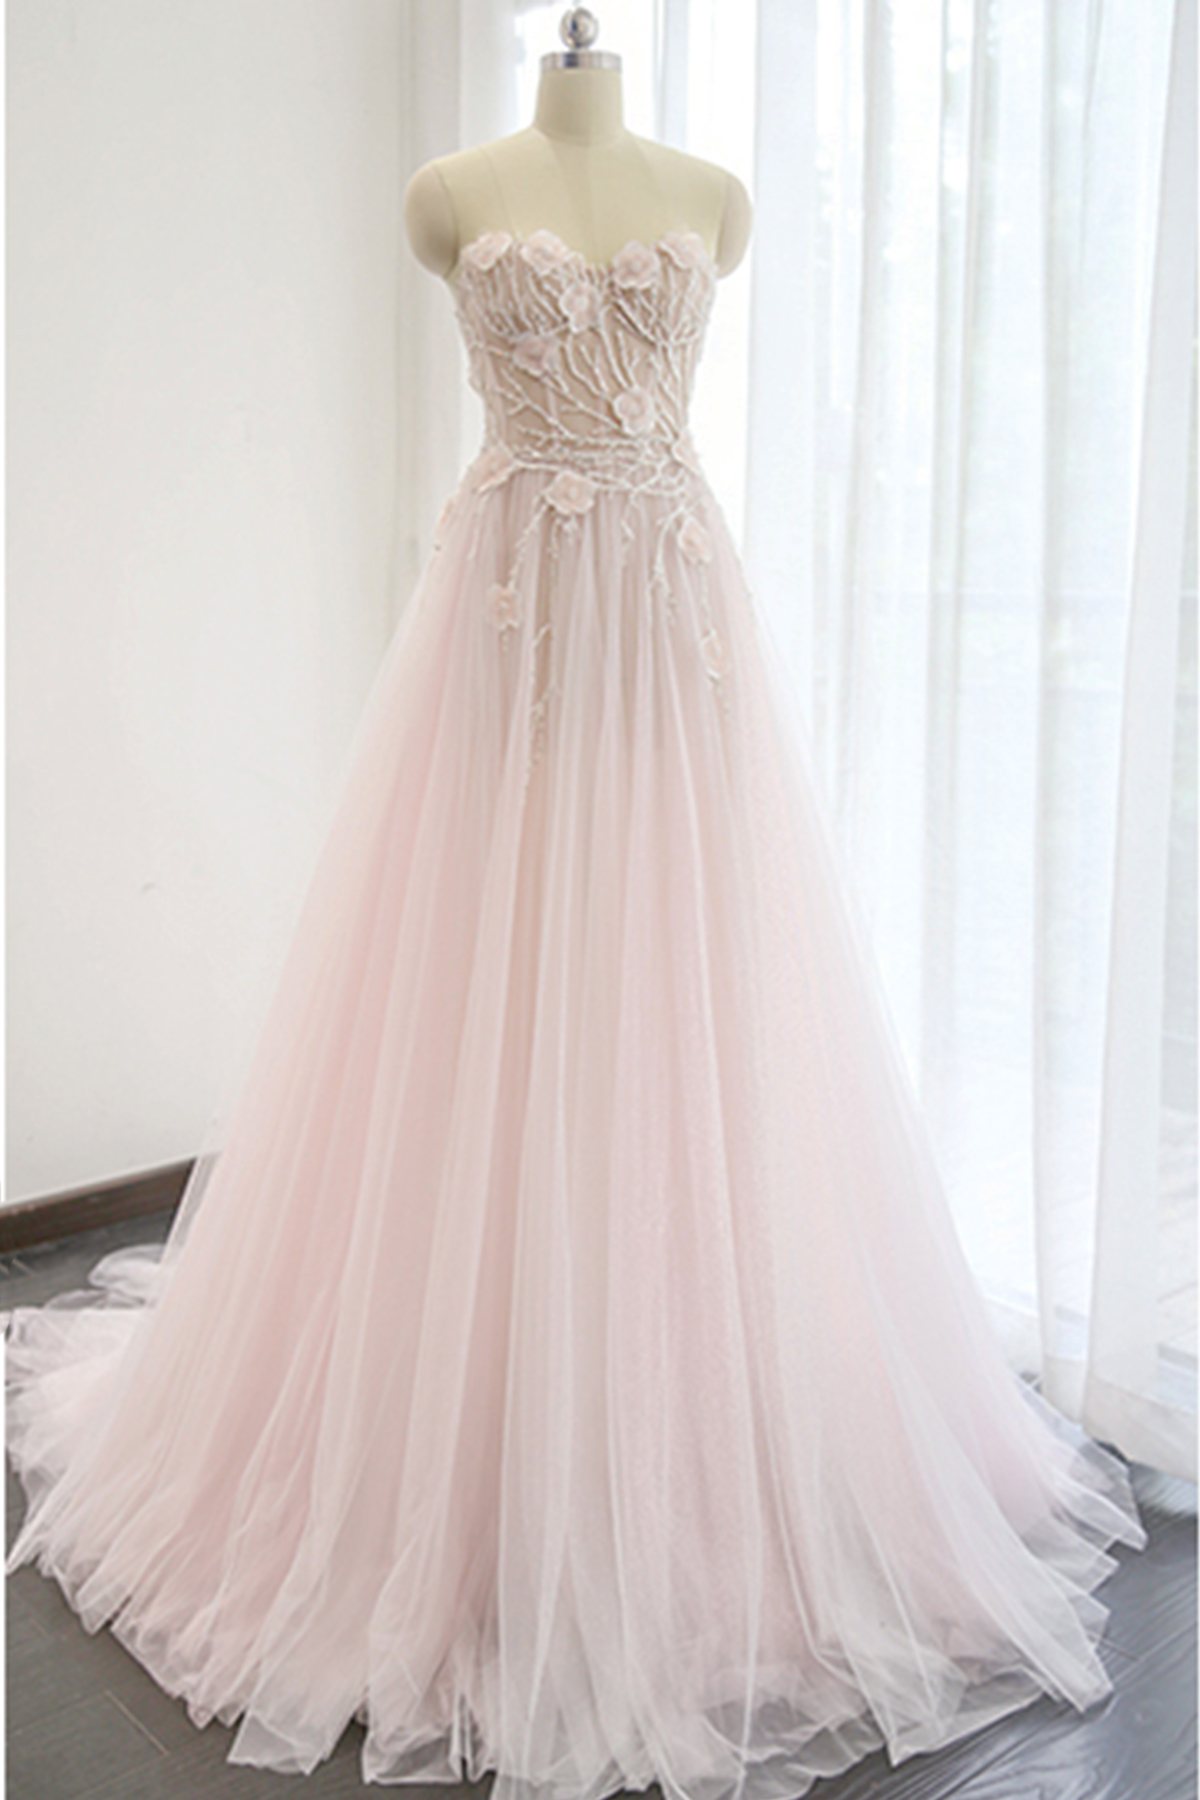 Princess pink wedding gowns advise to wear for on every day in 2019